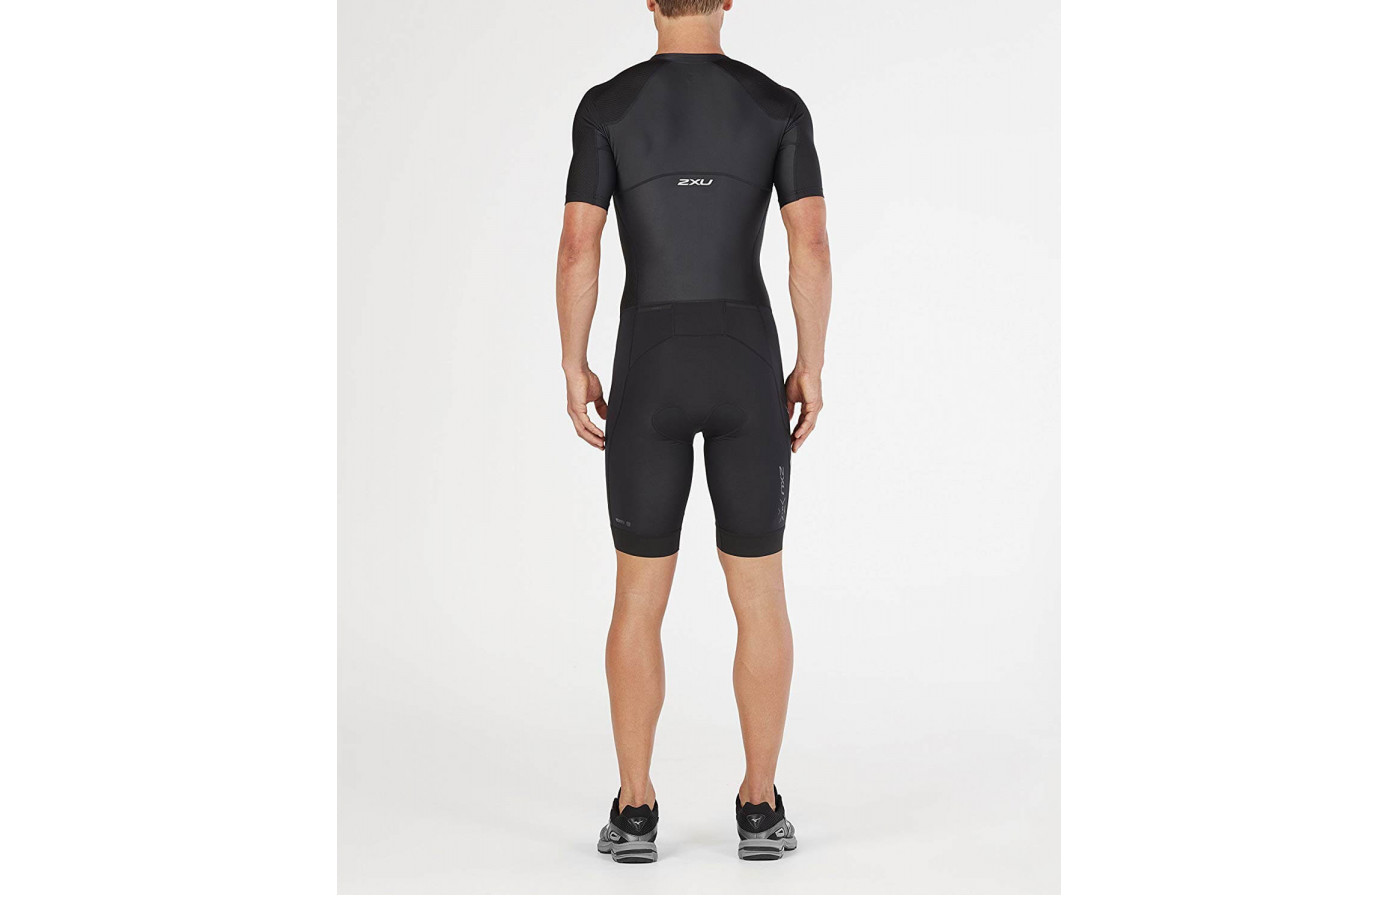 The 2XU Compression Full Zip Sleeved Trisuit helps to reduce DOMS.